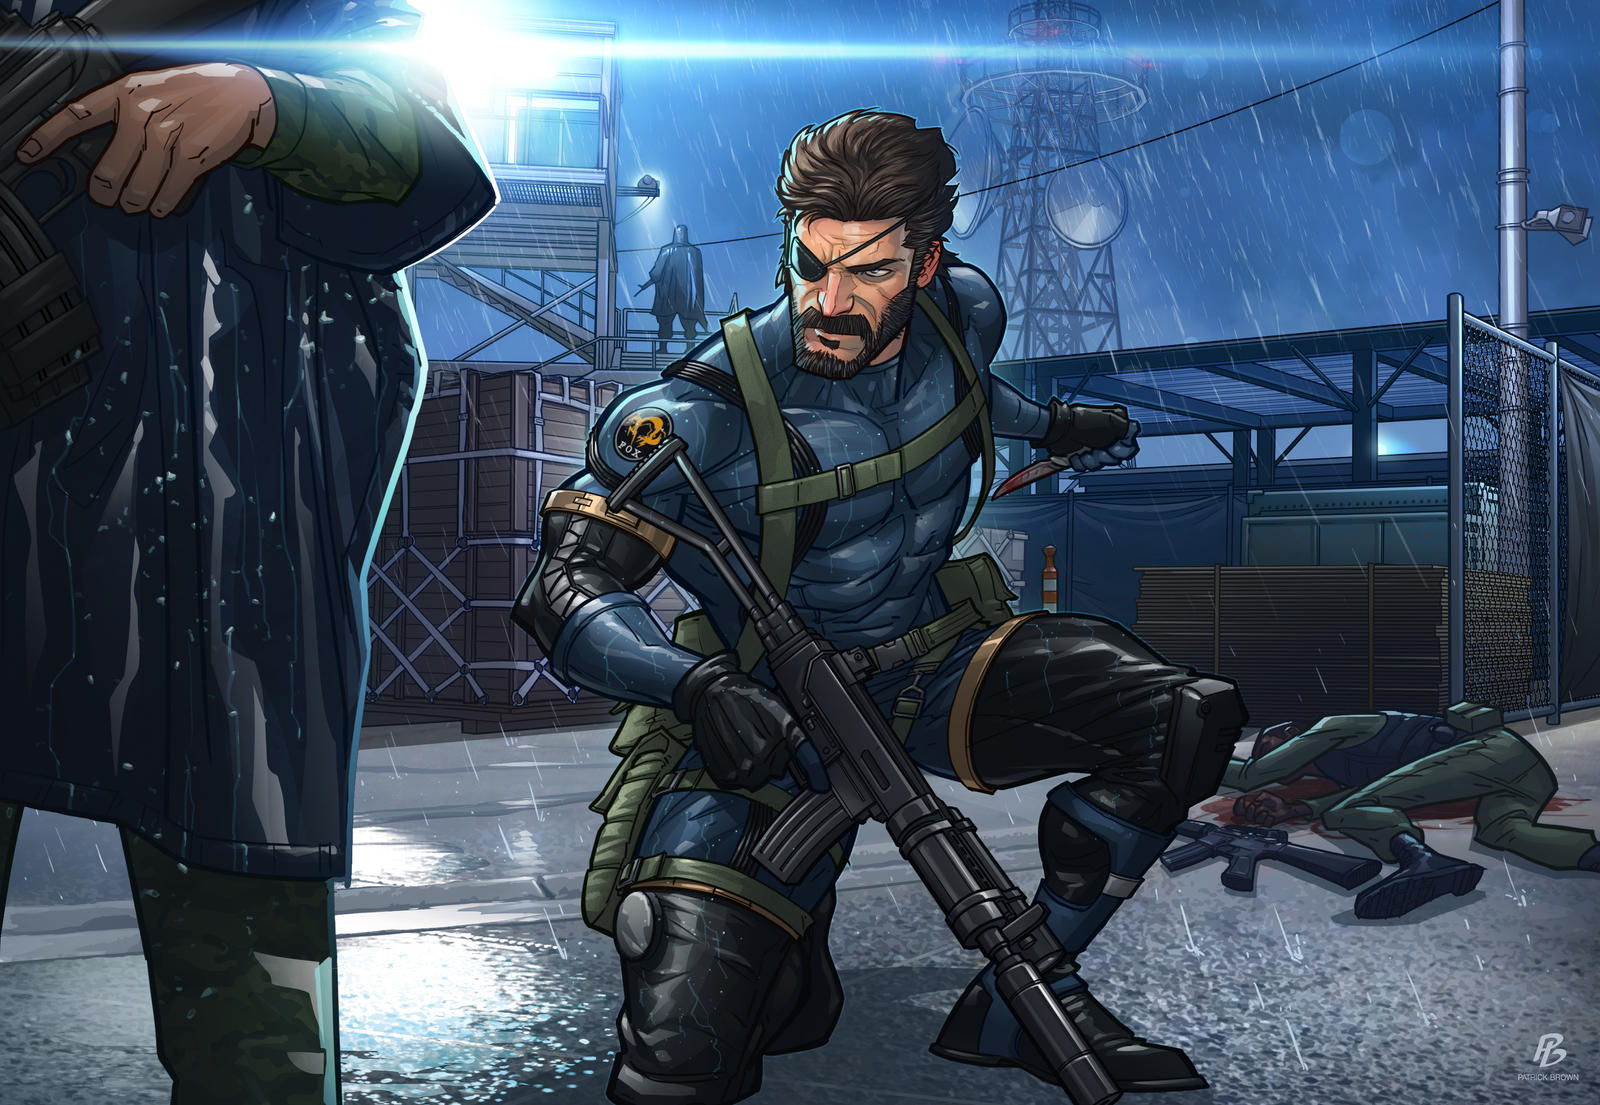 Metal Gear Solid Artwork: Metal Gear Solid V: Ground Zeroes By PatrickBrown On